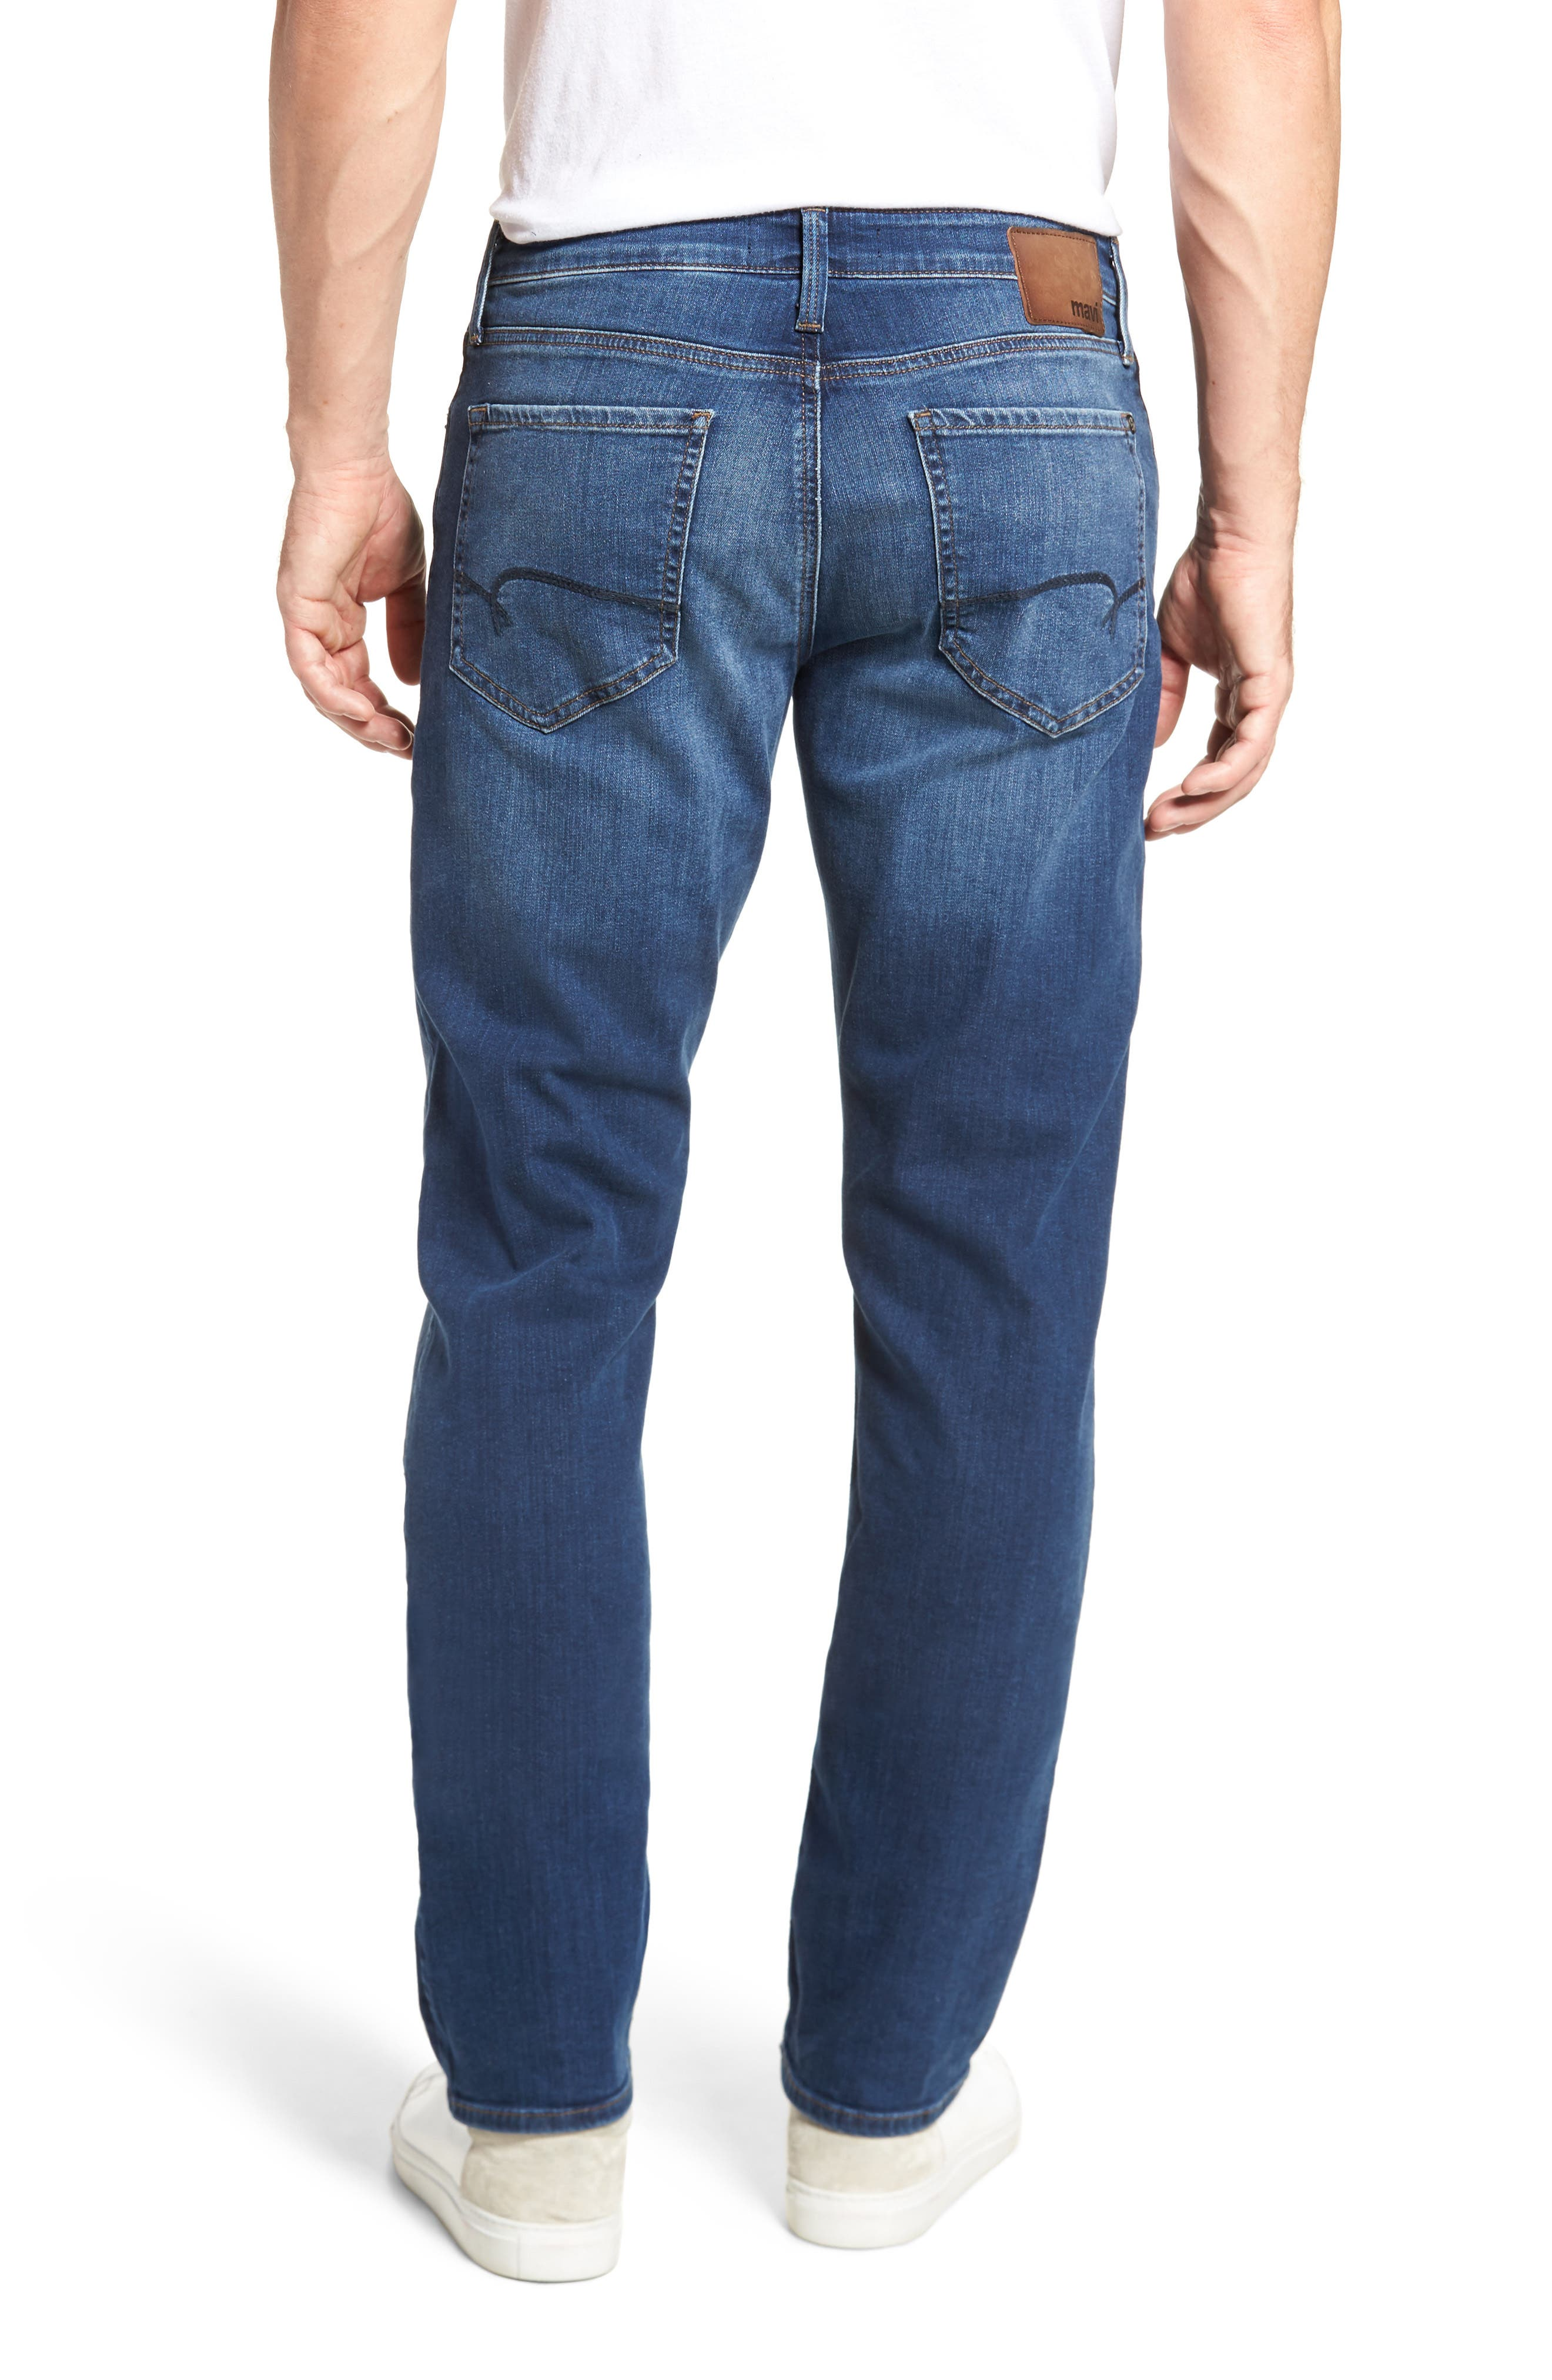 Myles Straight Fit Jeans,                             Alternate thumbnail 2, color,                             401